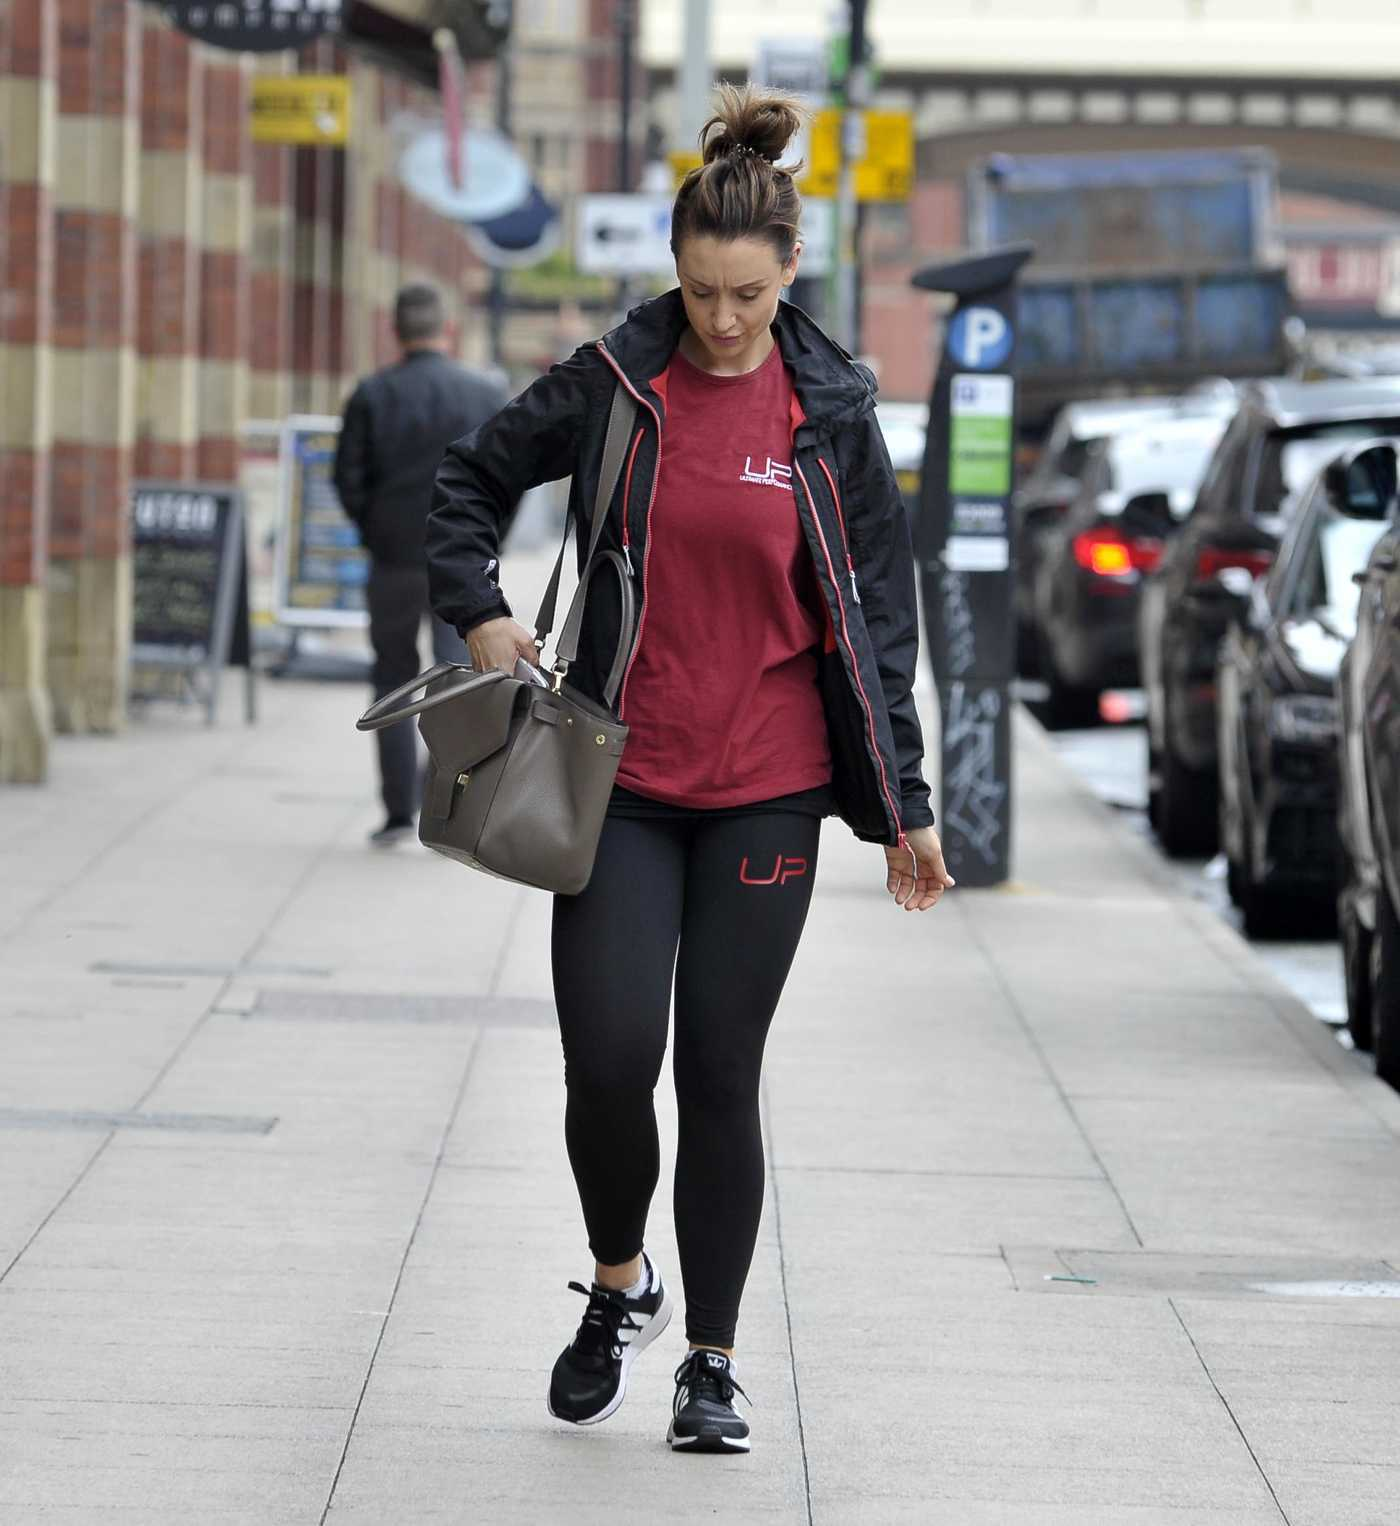 Catherine Tyldesley Leaves the Gym in Manchester 07/13/2018